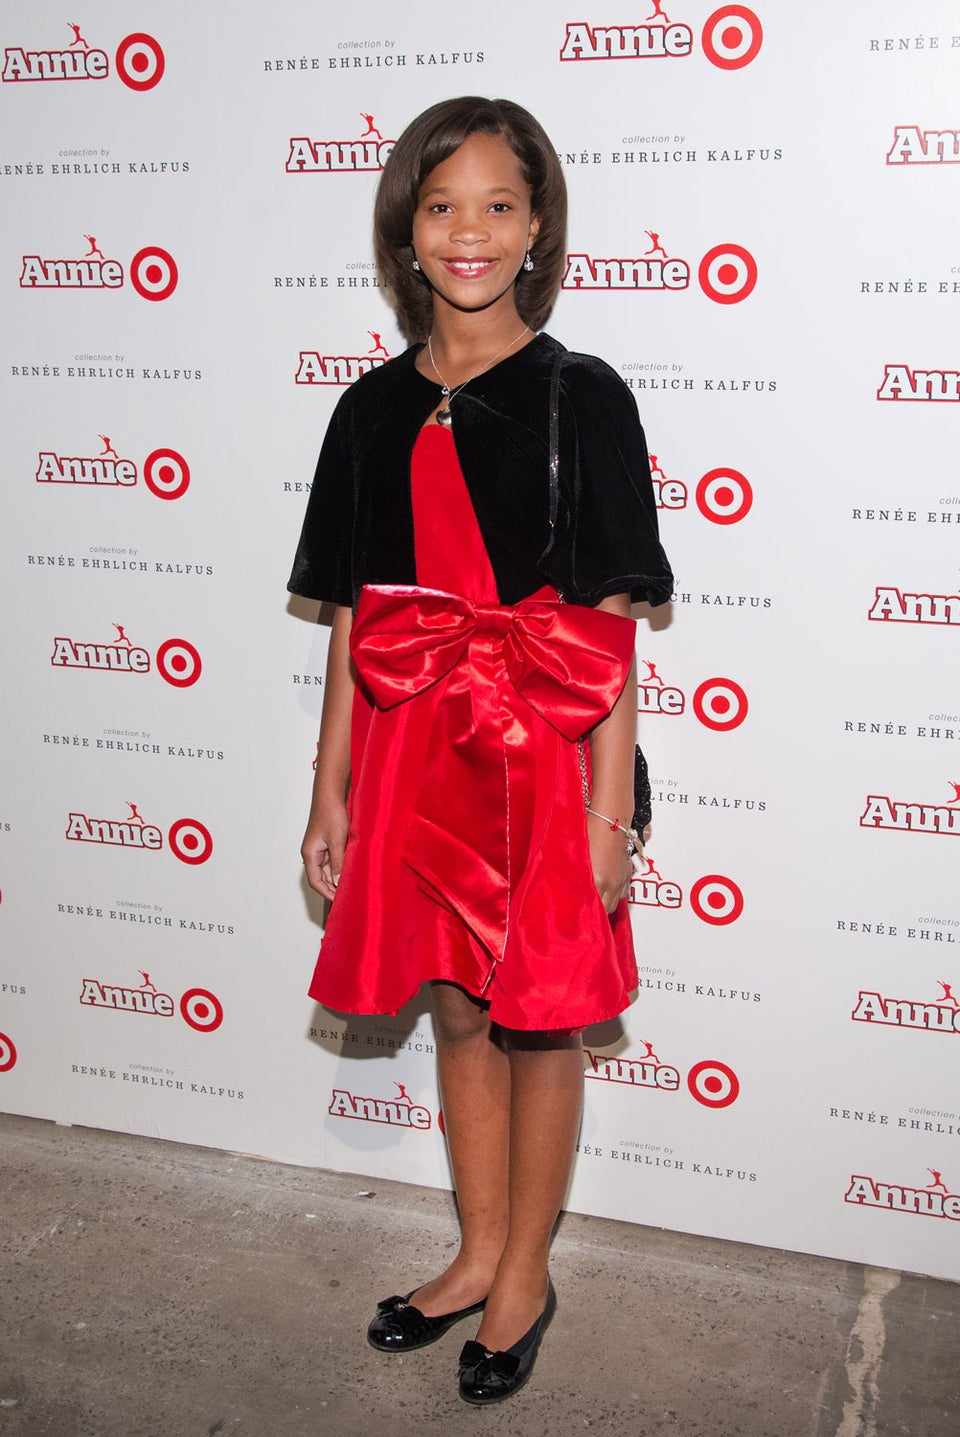 Must-See: Watch New Trailer for 'Annie'